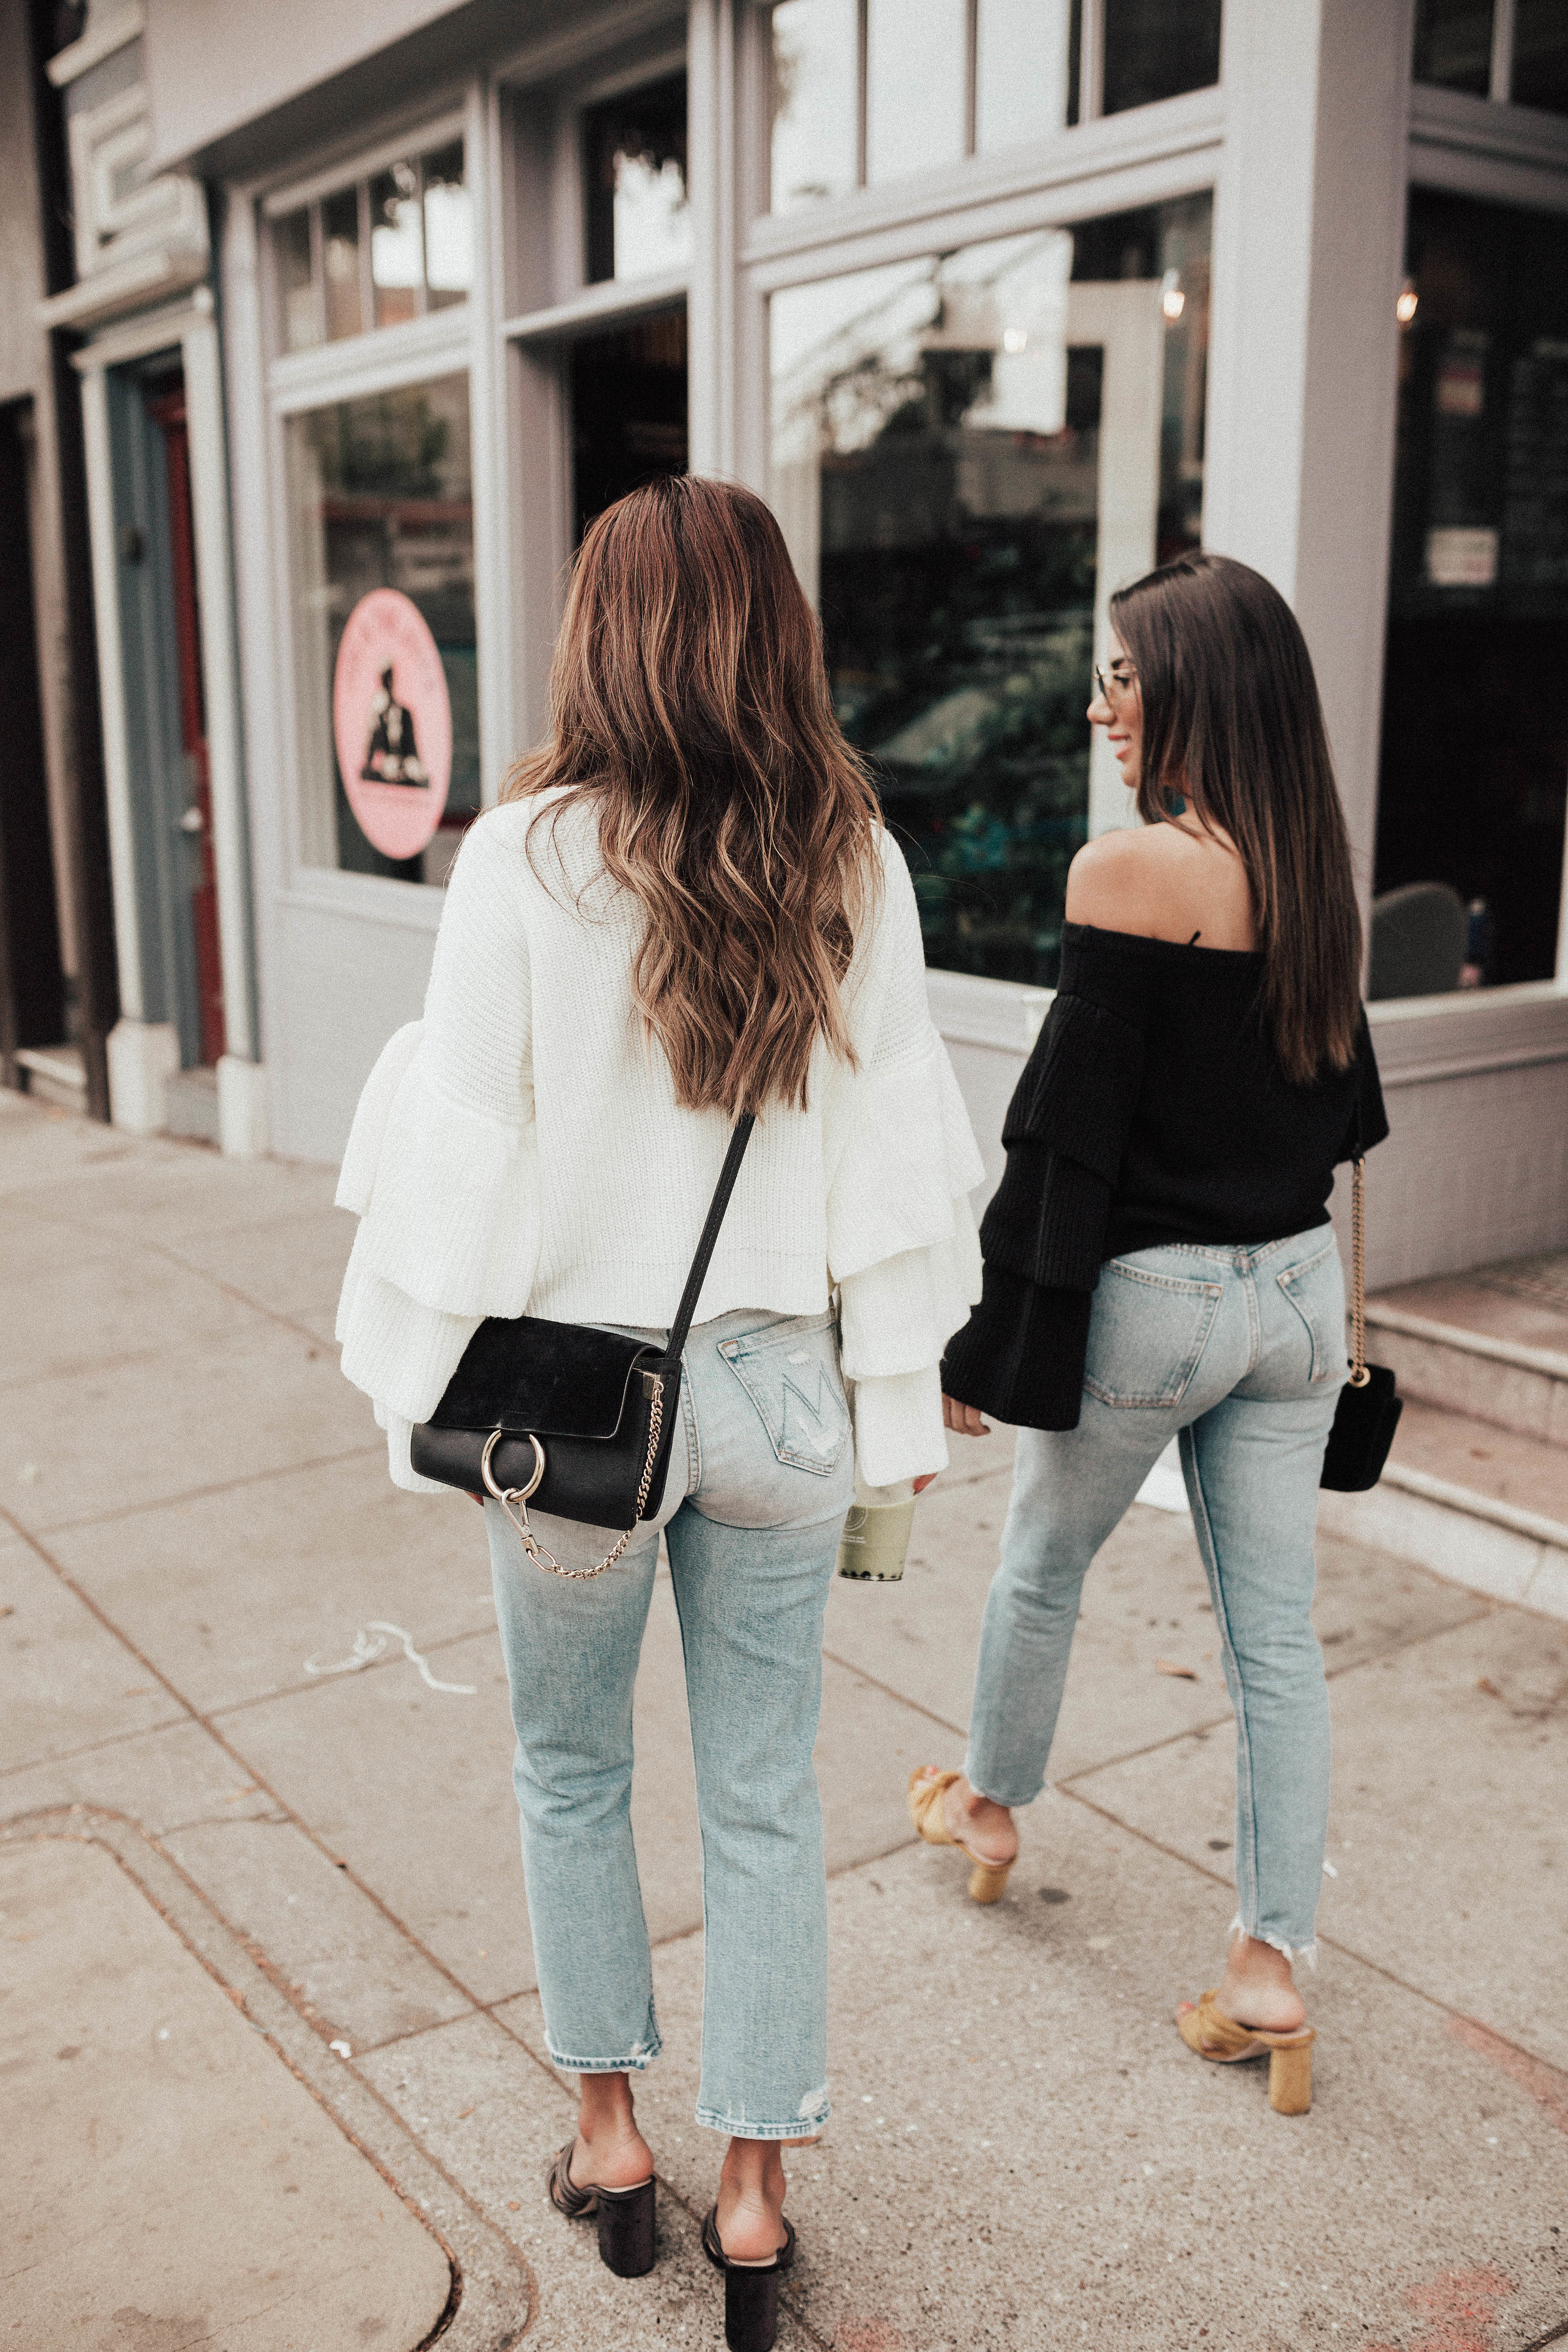 San Francisco style: jeans and sweater look